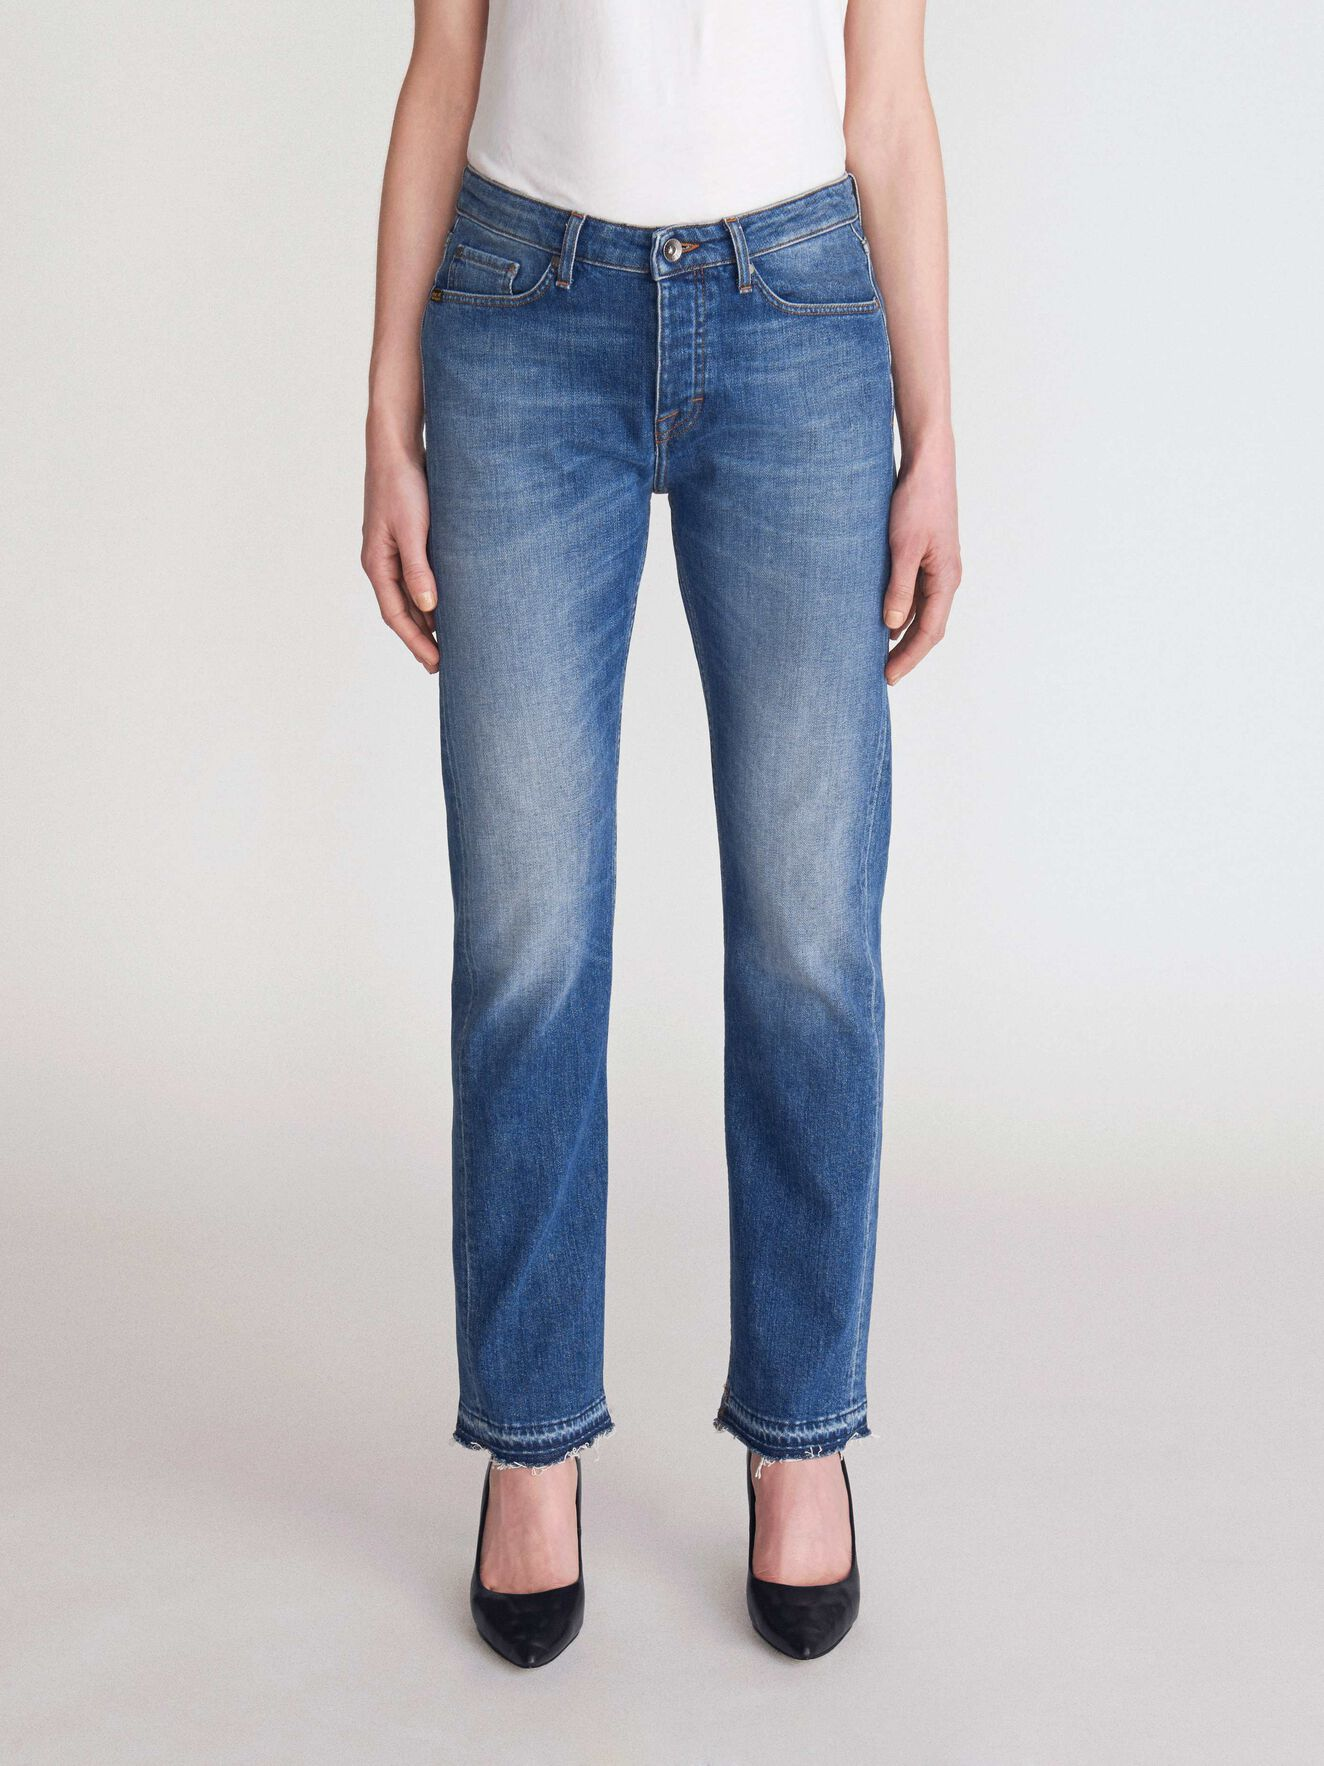 Aude Jeans in Medium Blue from Tiger of Sweden